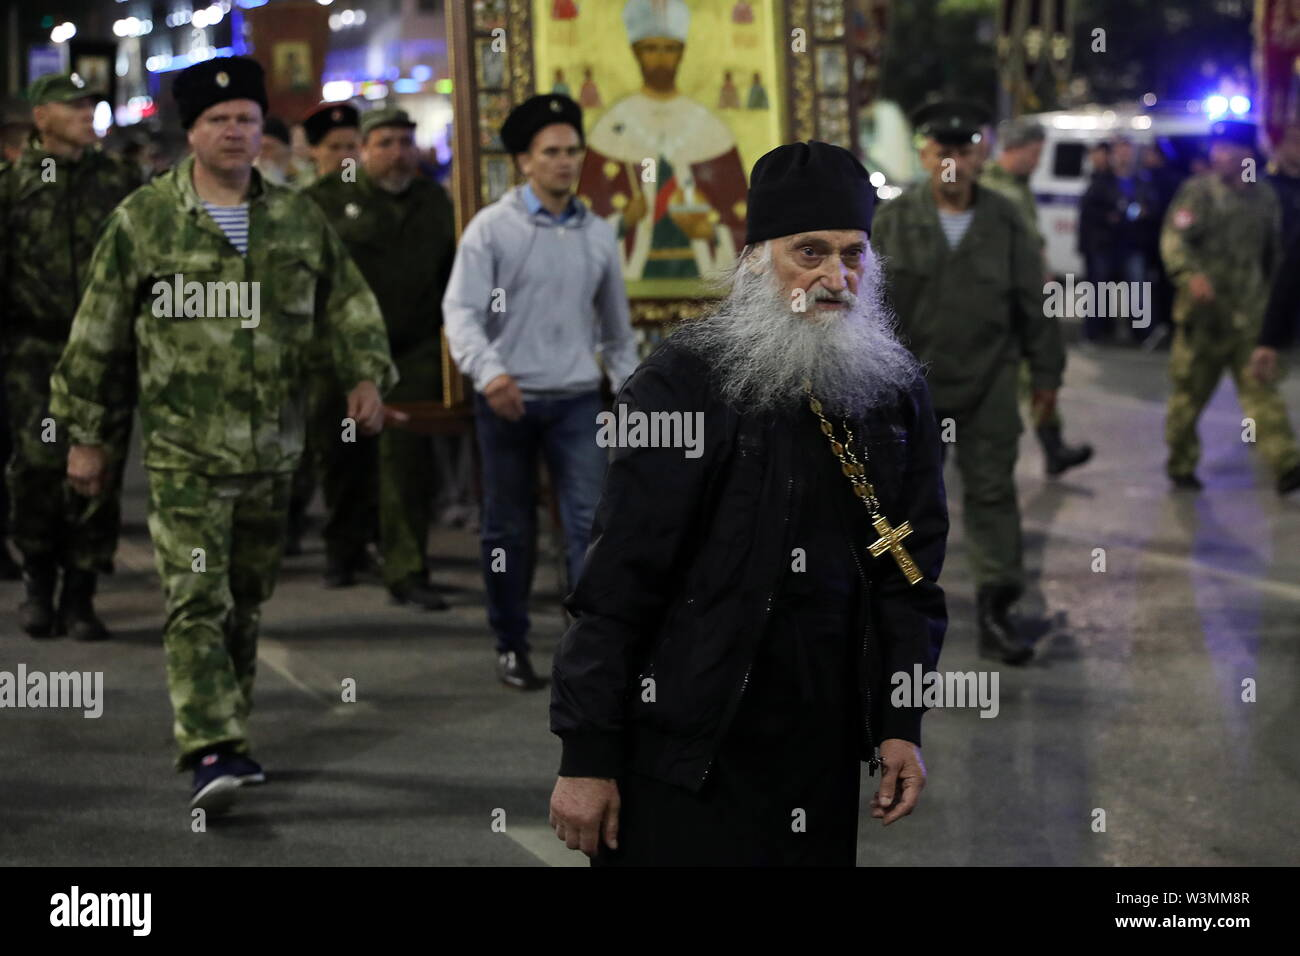 Yekaterinburg, Russia. 17th July, 2019. YEKATERINBURG, RUSSIA - JULY 17, 2019: A member of the clergy takes part in a religious procession in memory of the Russian royal family from the Church of All Saints in Yekaterinburg to the Ganina Yama Monastery in the Sverdlovsk Region. Emperor Nicholas II of Russia and his family were executed on July 17, 1918. The procession is held as part of the Tsar Days Orthodox Culture Festival. Donat Sorokin/TASS Credit: ITAR-TASS News Agency/Alamy Live News - Stock Image